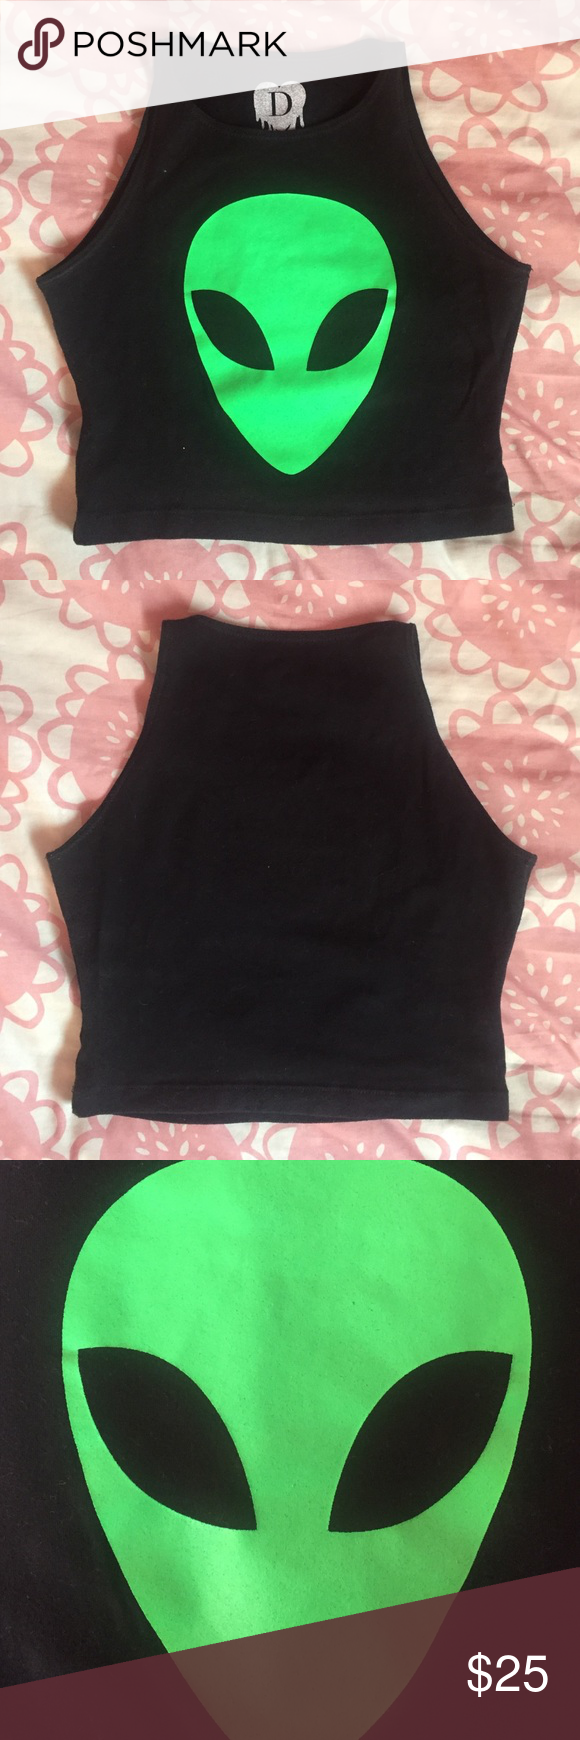 Green Alien American Apparel Crop Top From Declared clothing but on an American Apparel Crop Top. Perfect condition. Worn a few times but Top has no pilling and Alien is it ruined since washed inside out and hung dry UNIF Tops Crop Tops